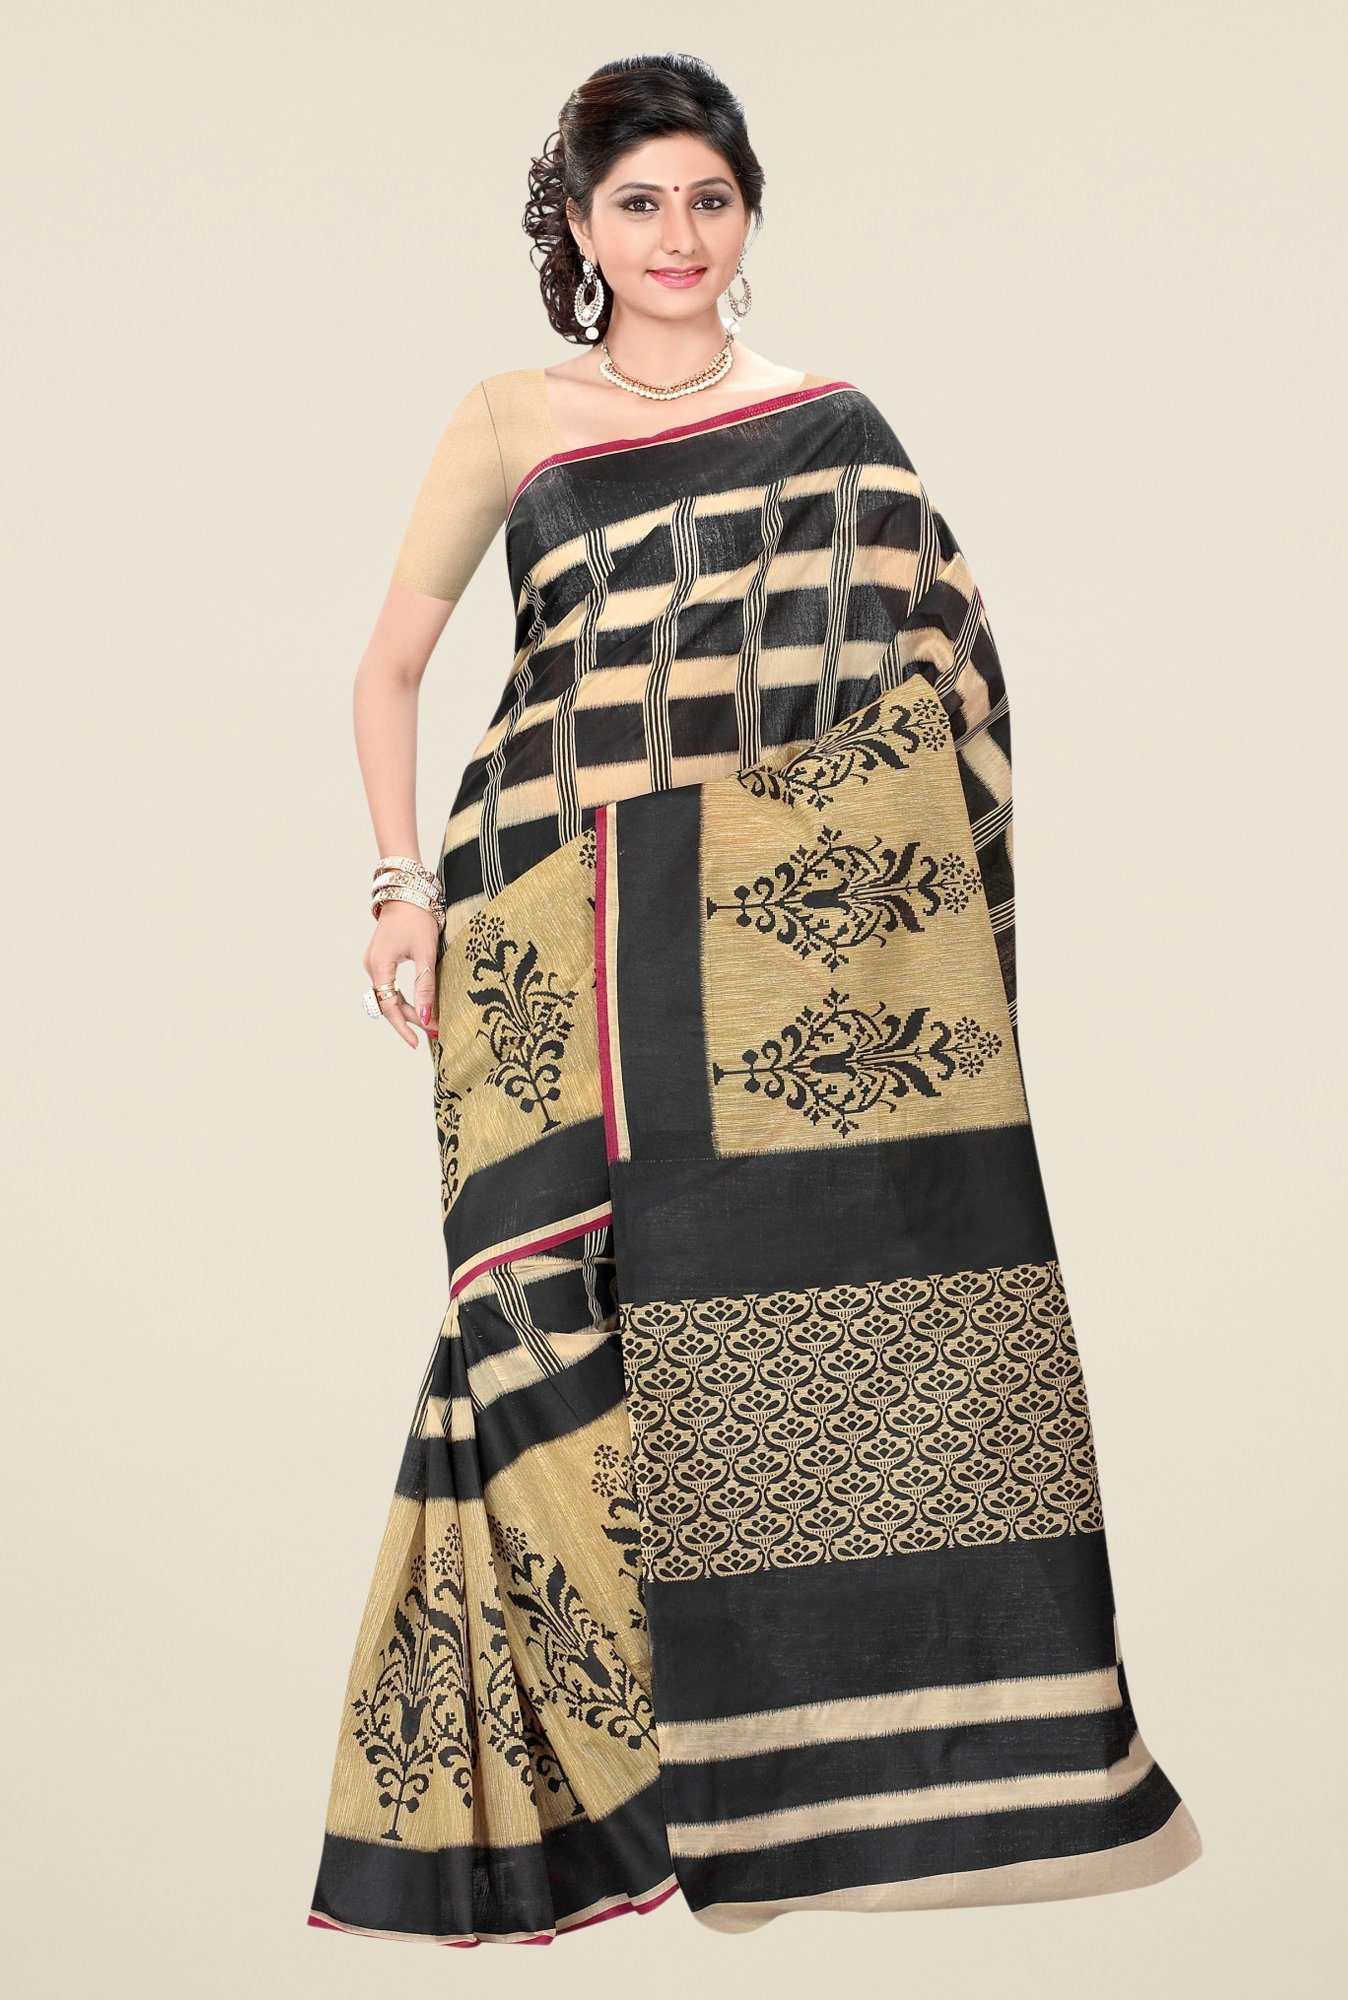 Triveni Beige & Black Printed Blended Cotton Saree